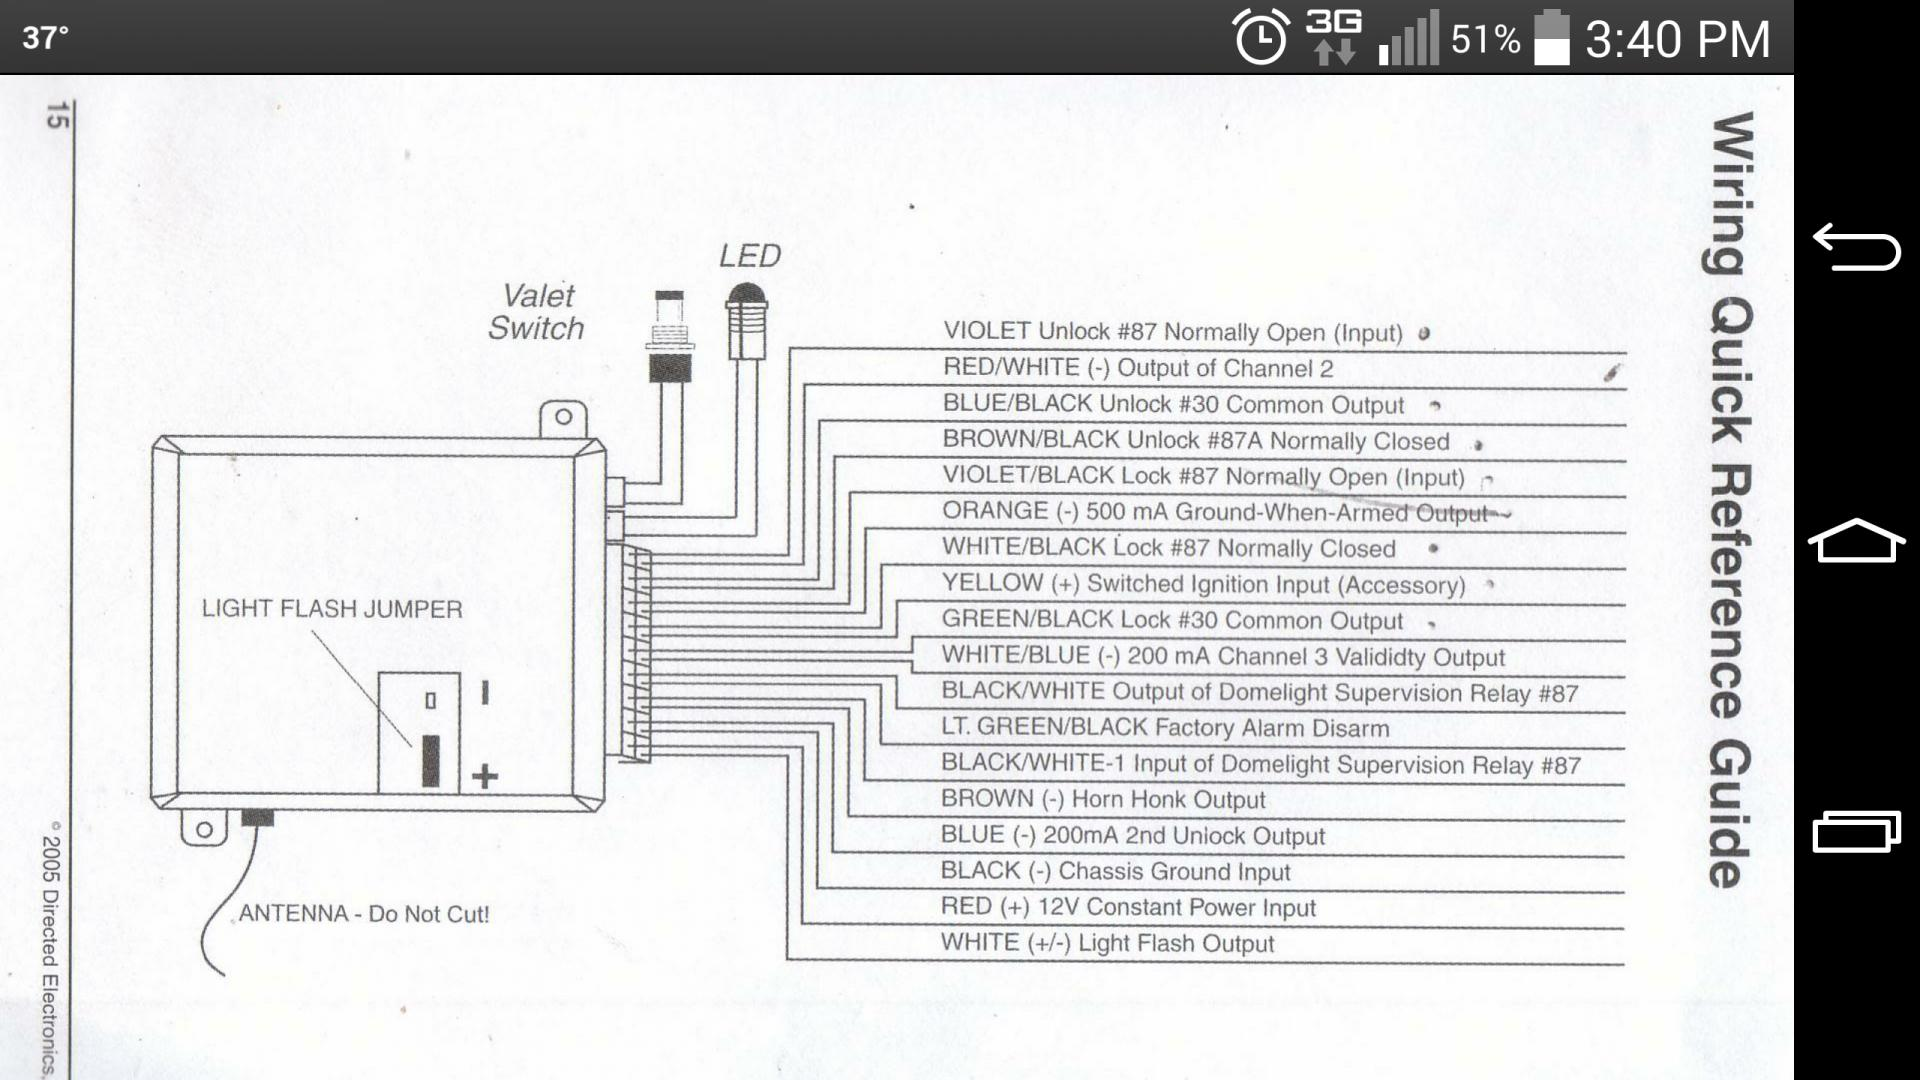 hight resolution of valet remote wiring diagram wiring diagram expert valet model 562t wiring diagram valet wiring diagram